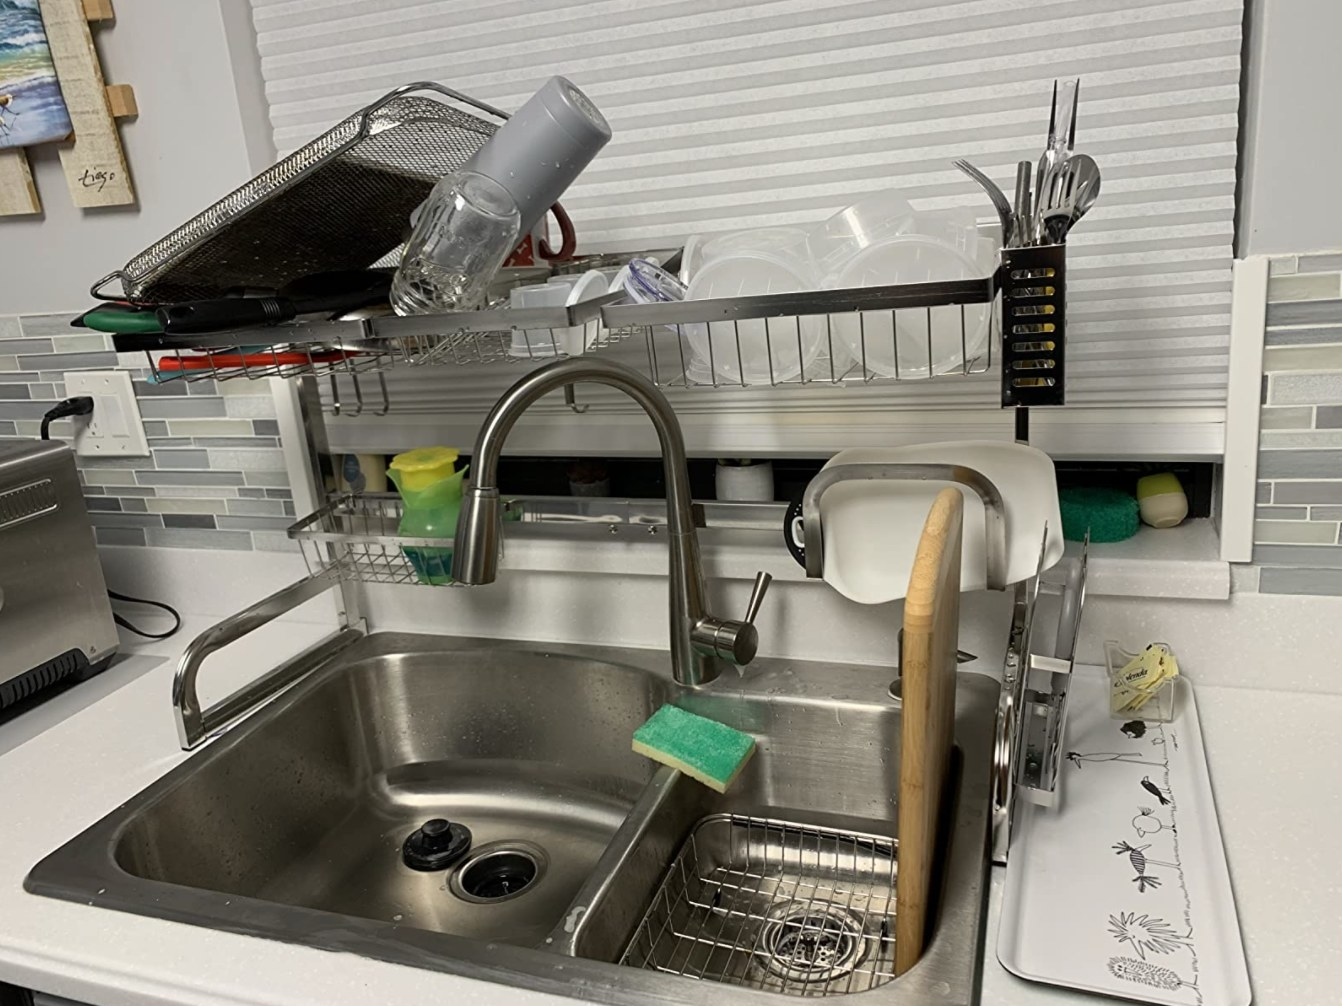 The over the sink drying rack holding dishes